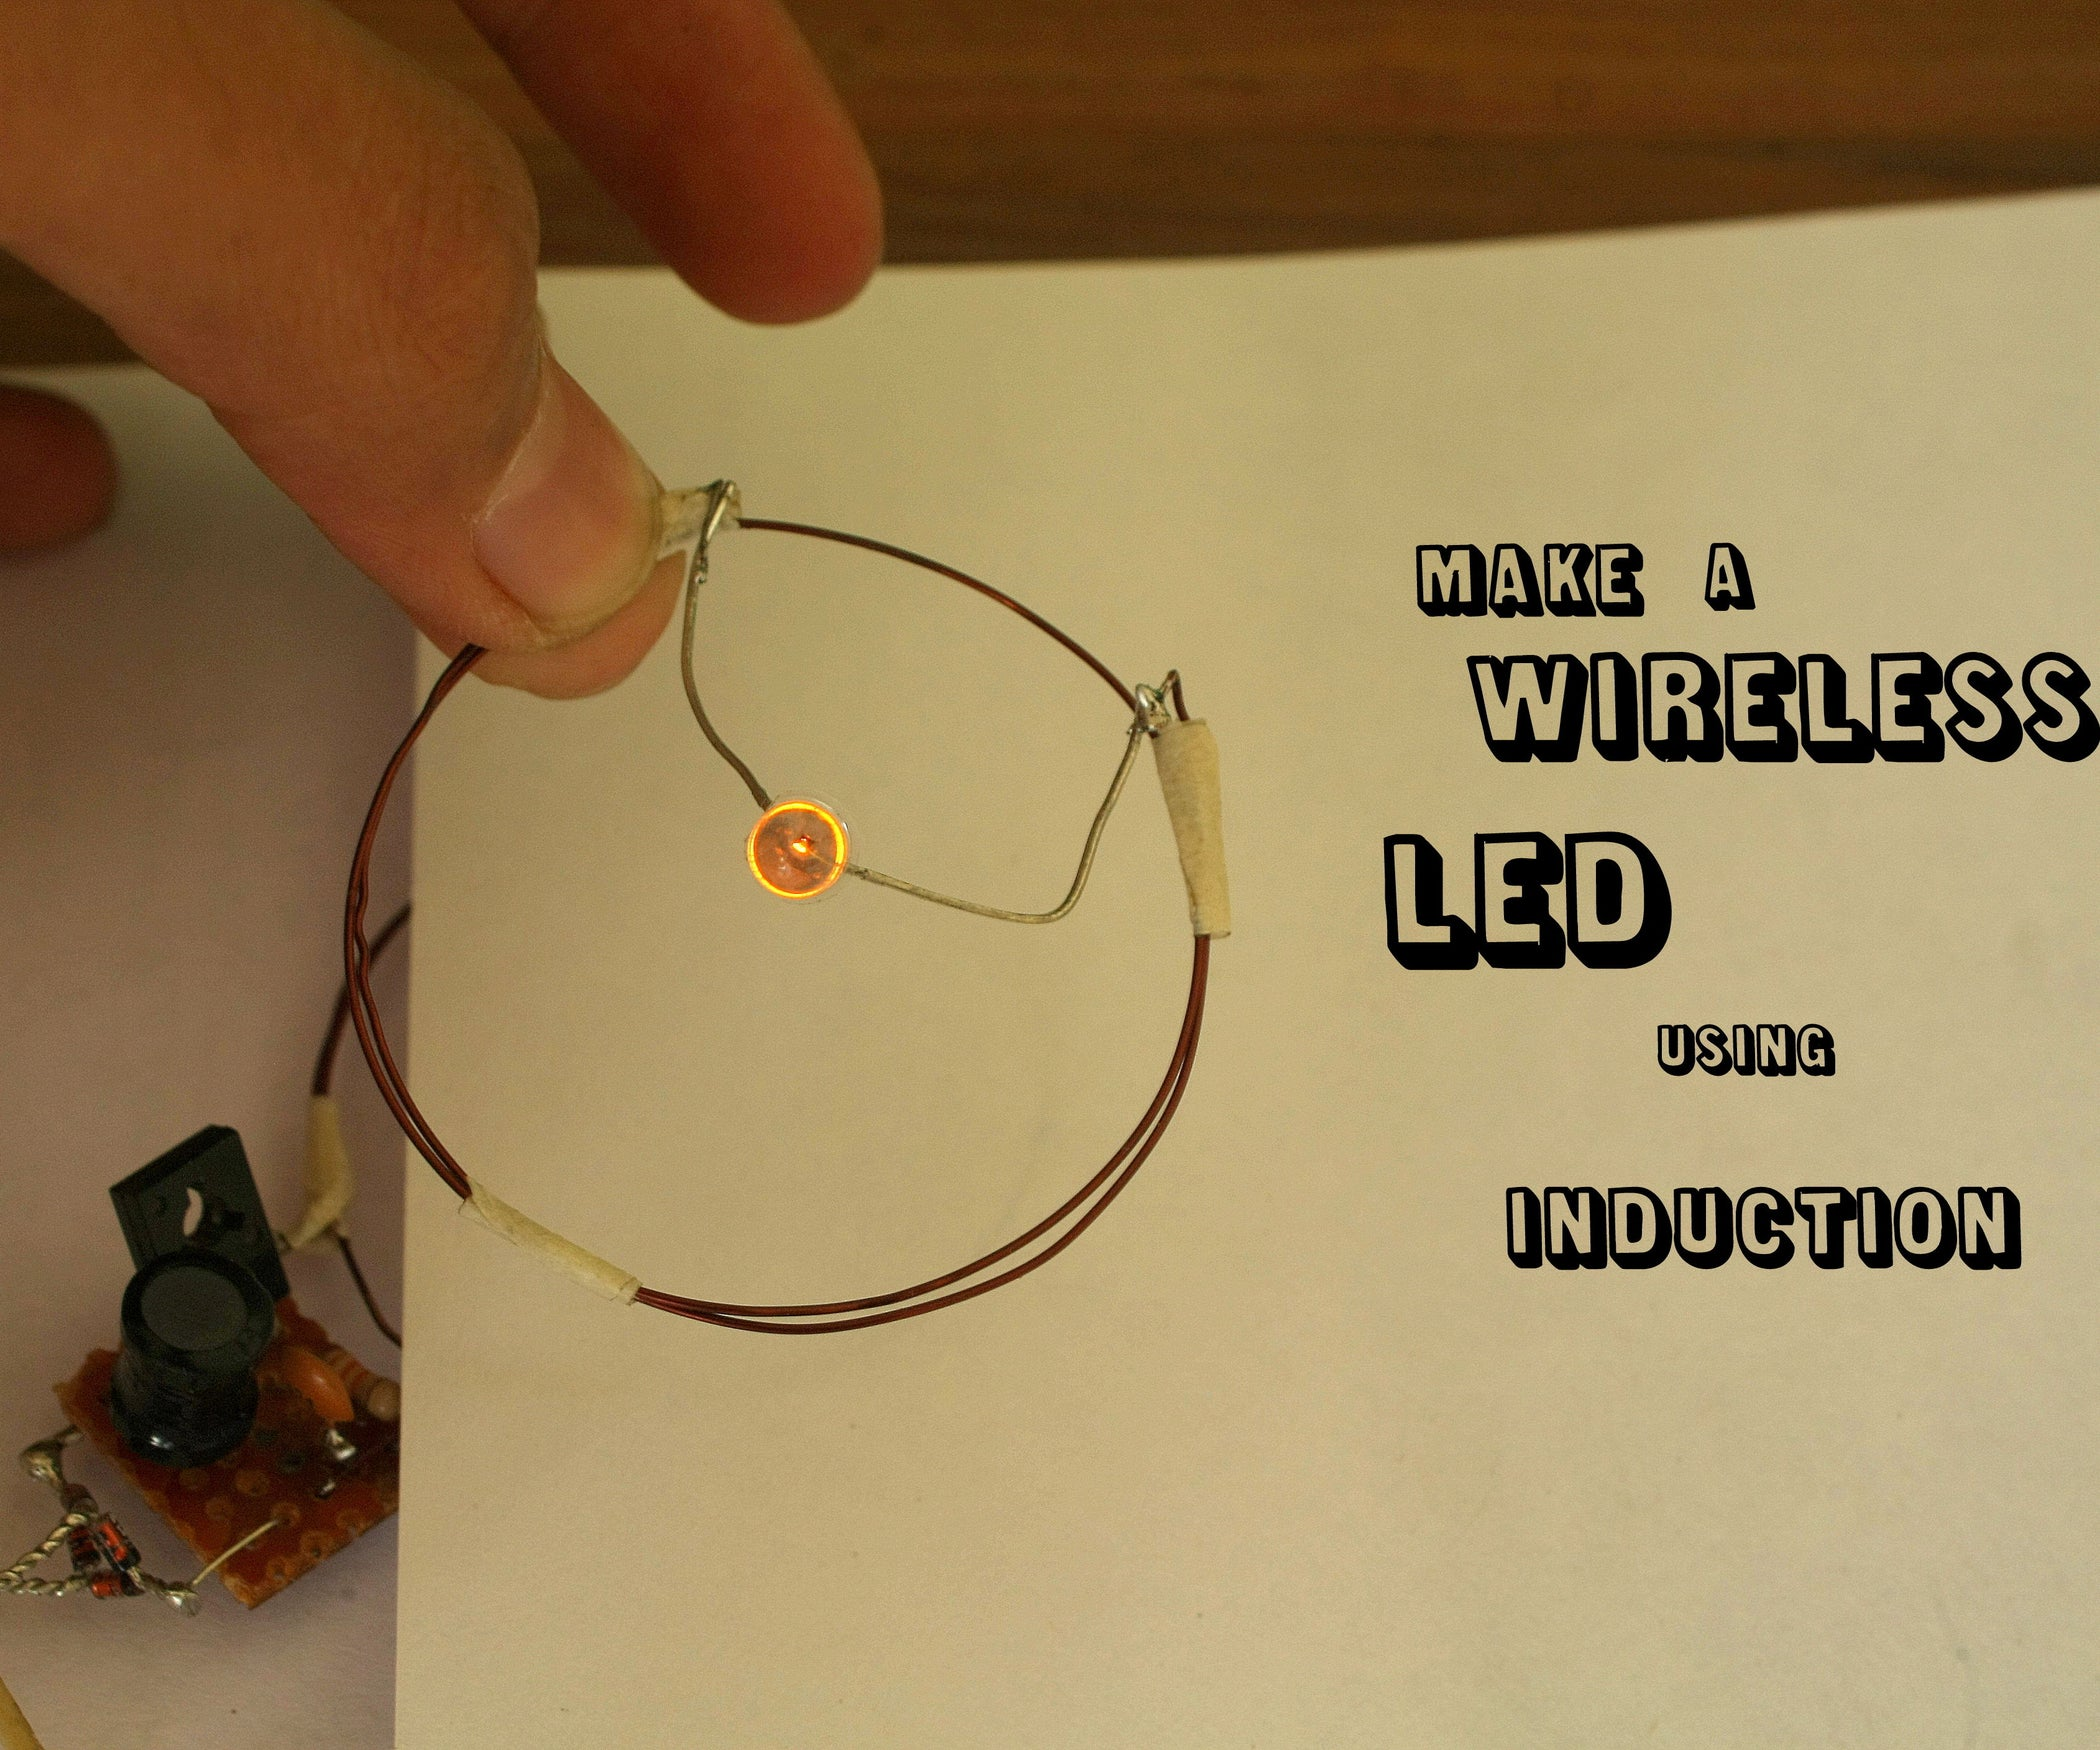 Easy Wireless Leds 5 Steps With Pictures Led Circuits And Schematics For The Hobbyist